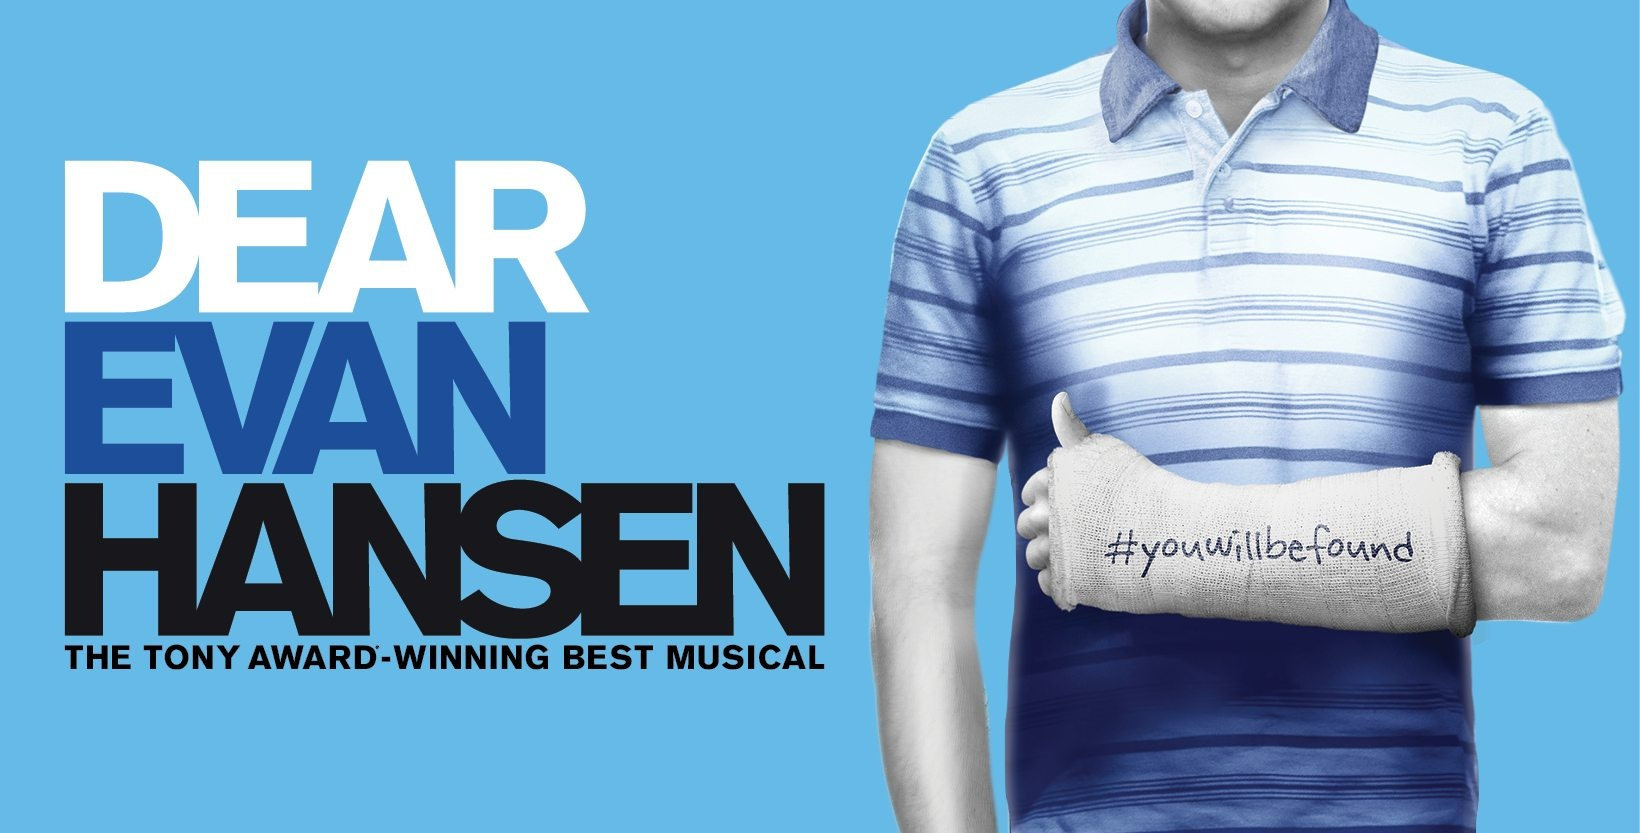 What are your top 5 favorite musicals? - Quora